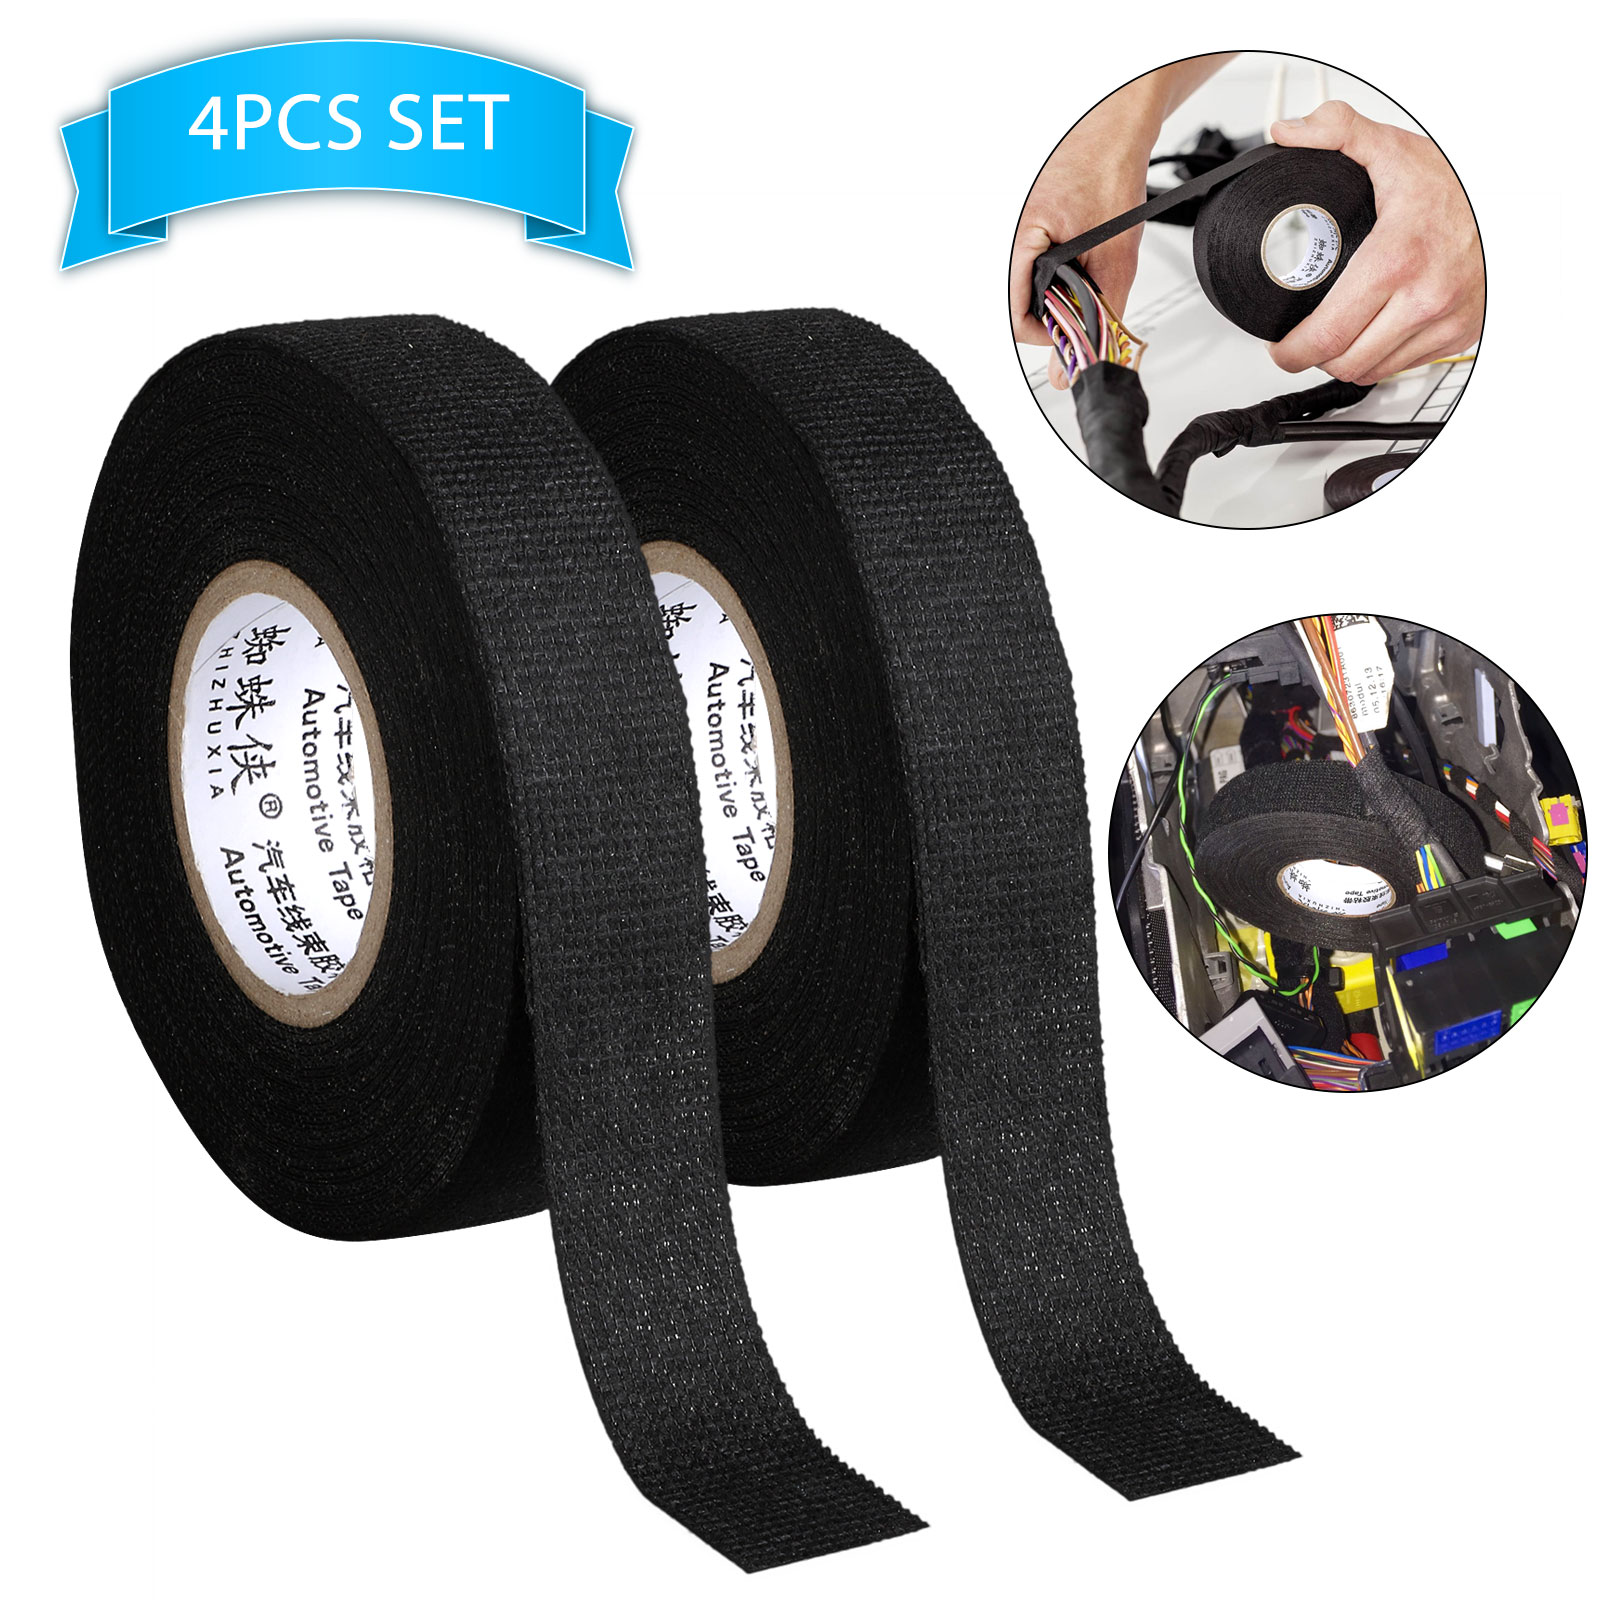 EEEkit 4 Rolls 49.2ft Wire Loom Harness Tape, Wiring Harness Tape, Wiring  Loom Harness Adhesive Polyester Tap, Adhesive Fabric Tape for Automobile,  Wire harnessing Noise Damping Heat Proof - Walmart.com - Walmart.comWalmart